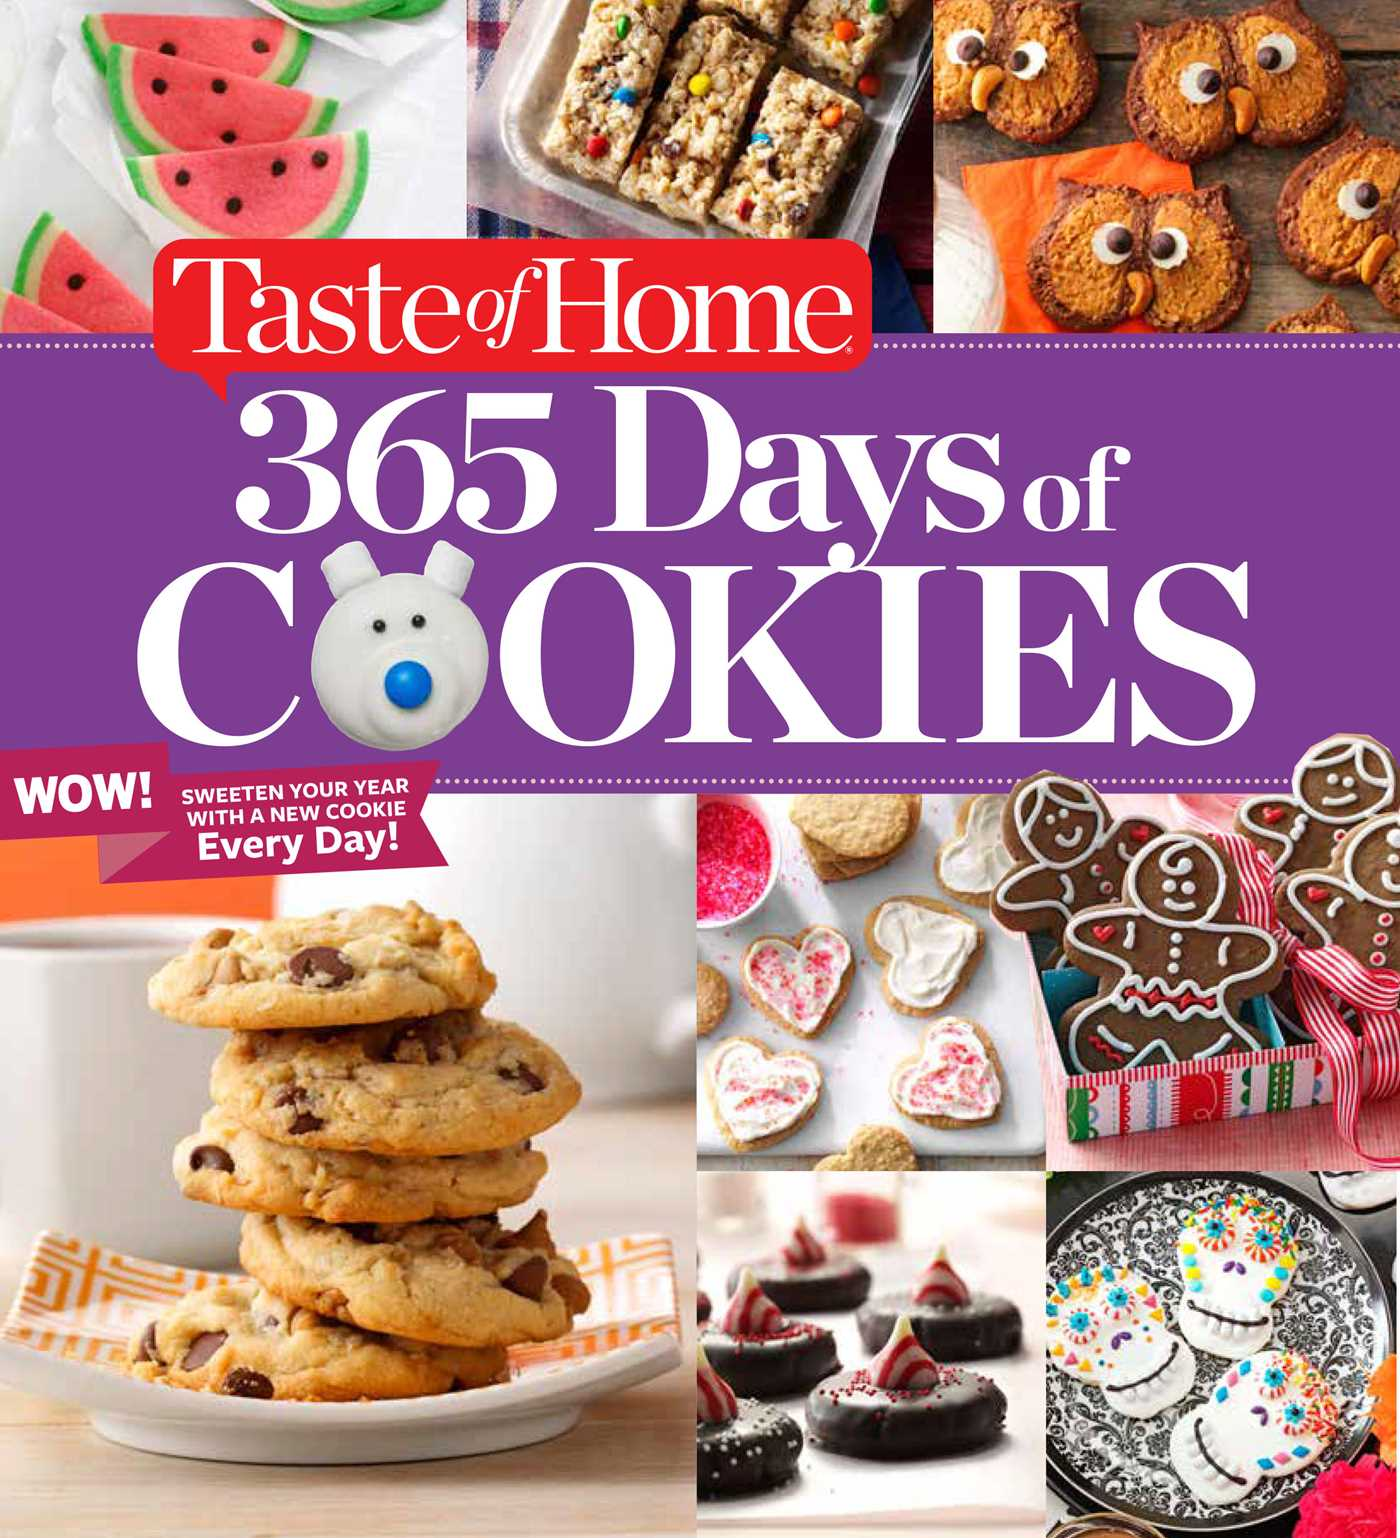 Taste of home 365 days of cookies 9781617656828 hr